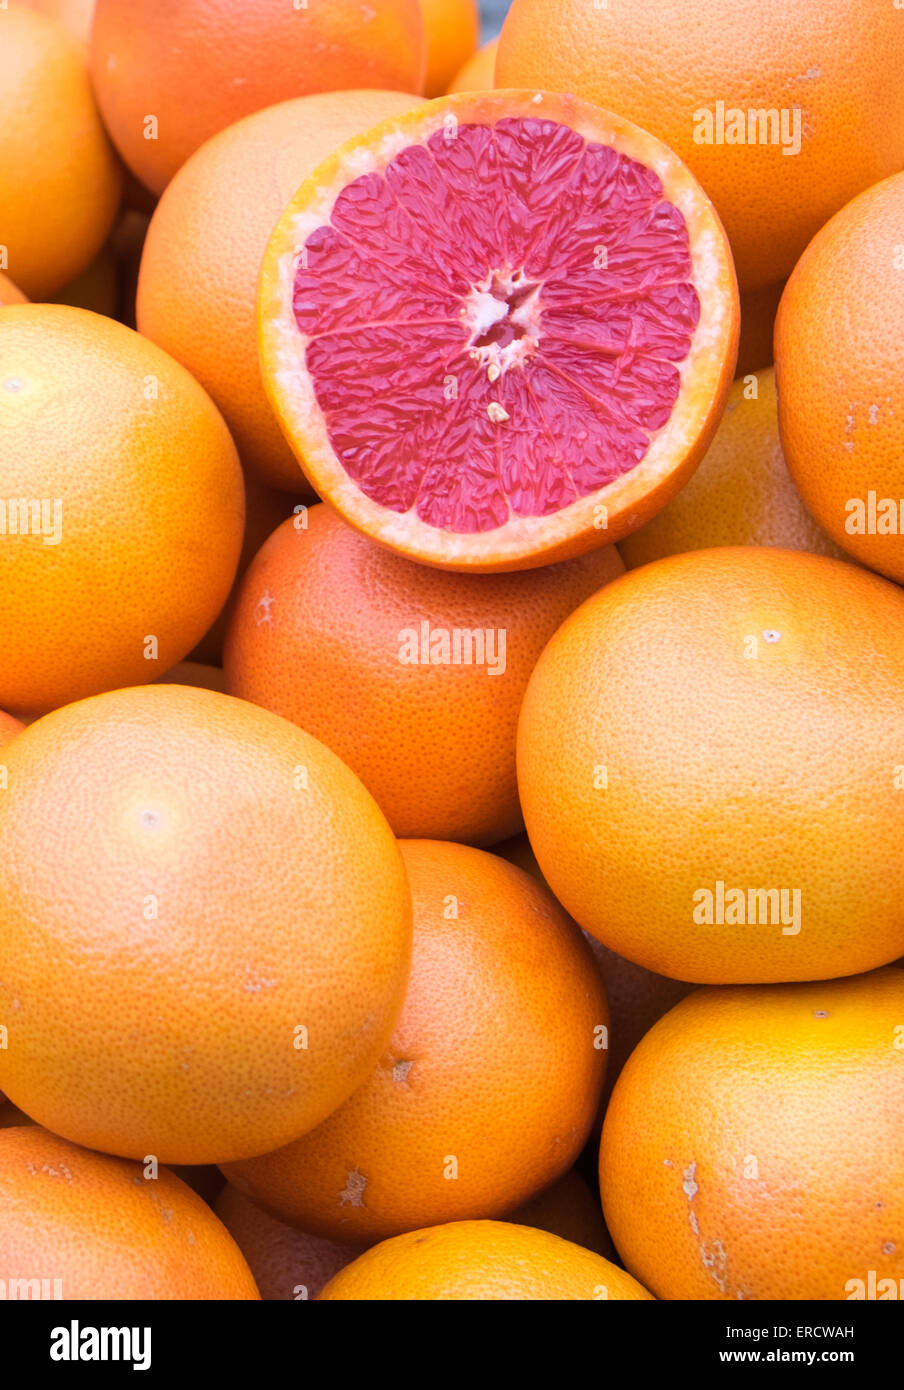 Ripe blood oranges for sale at a market - Stock Image